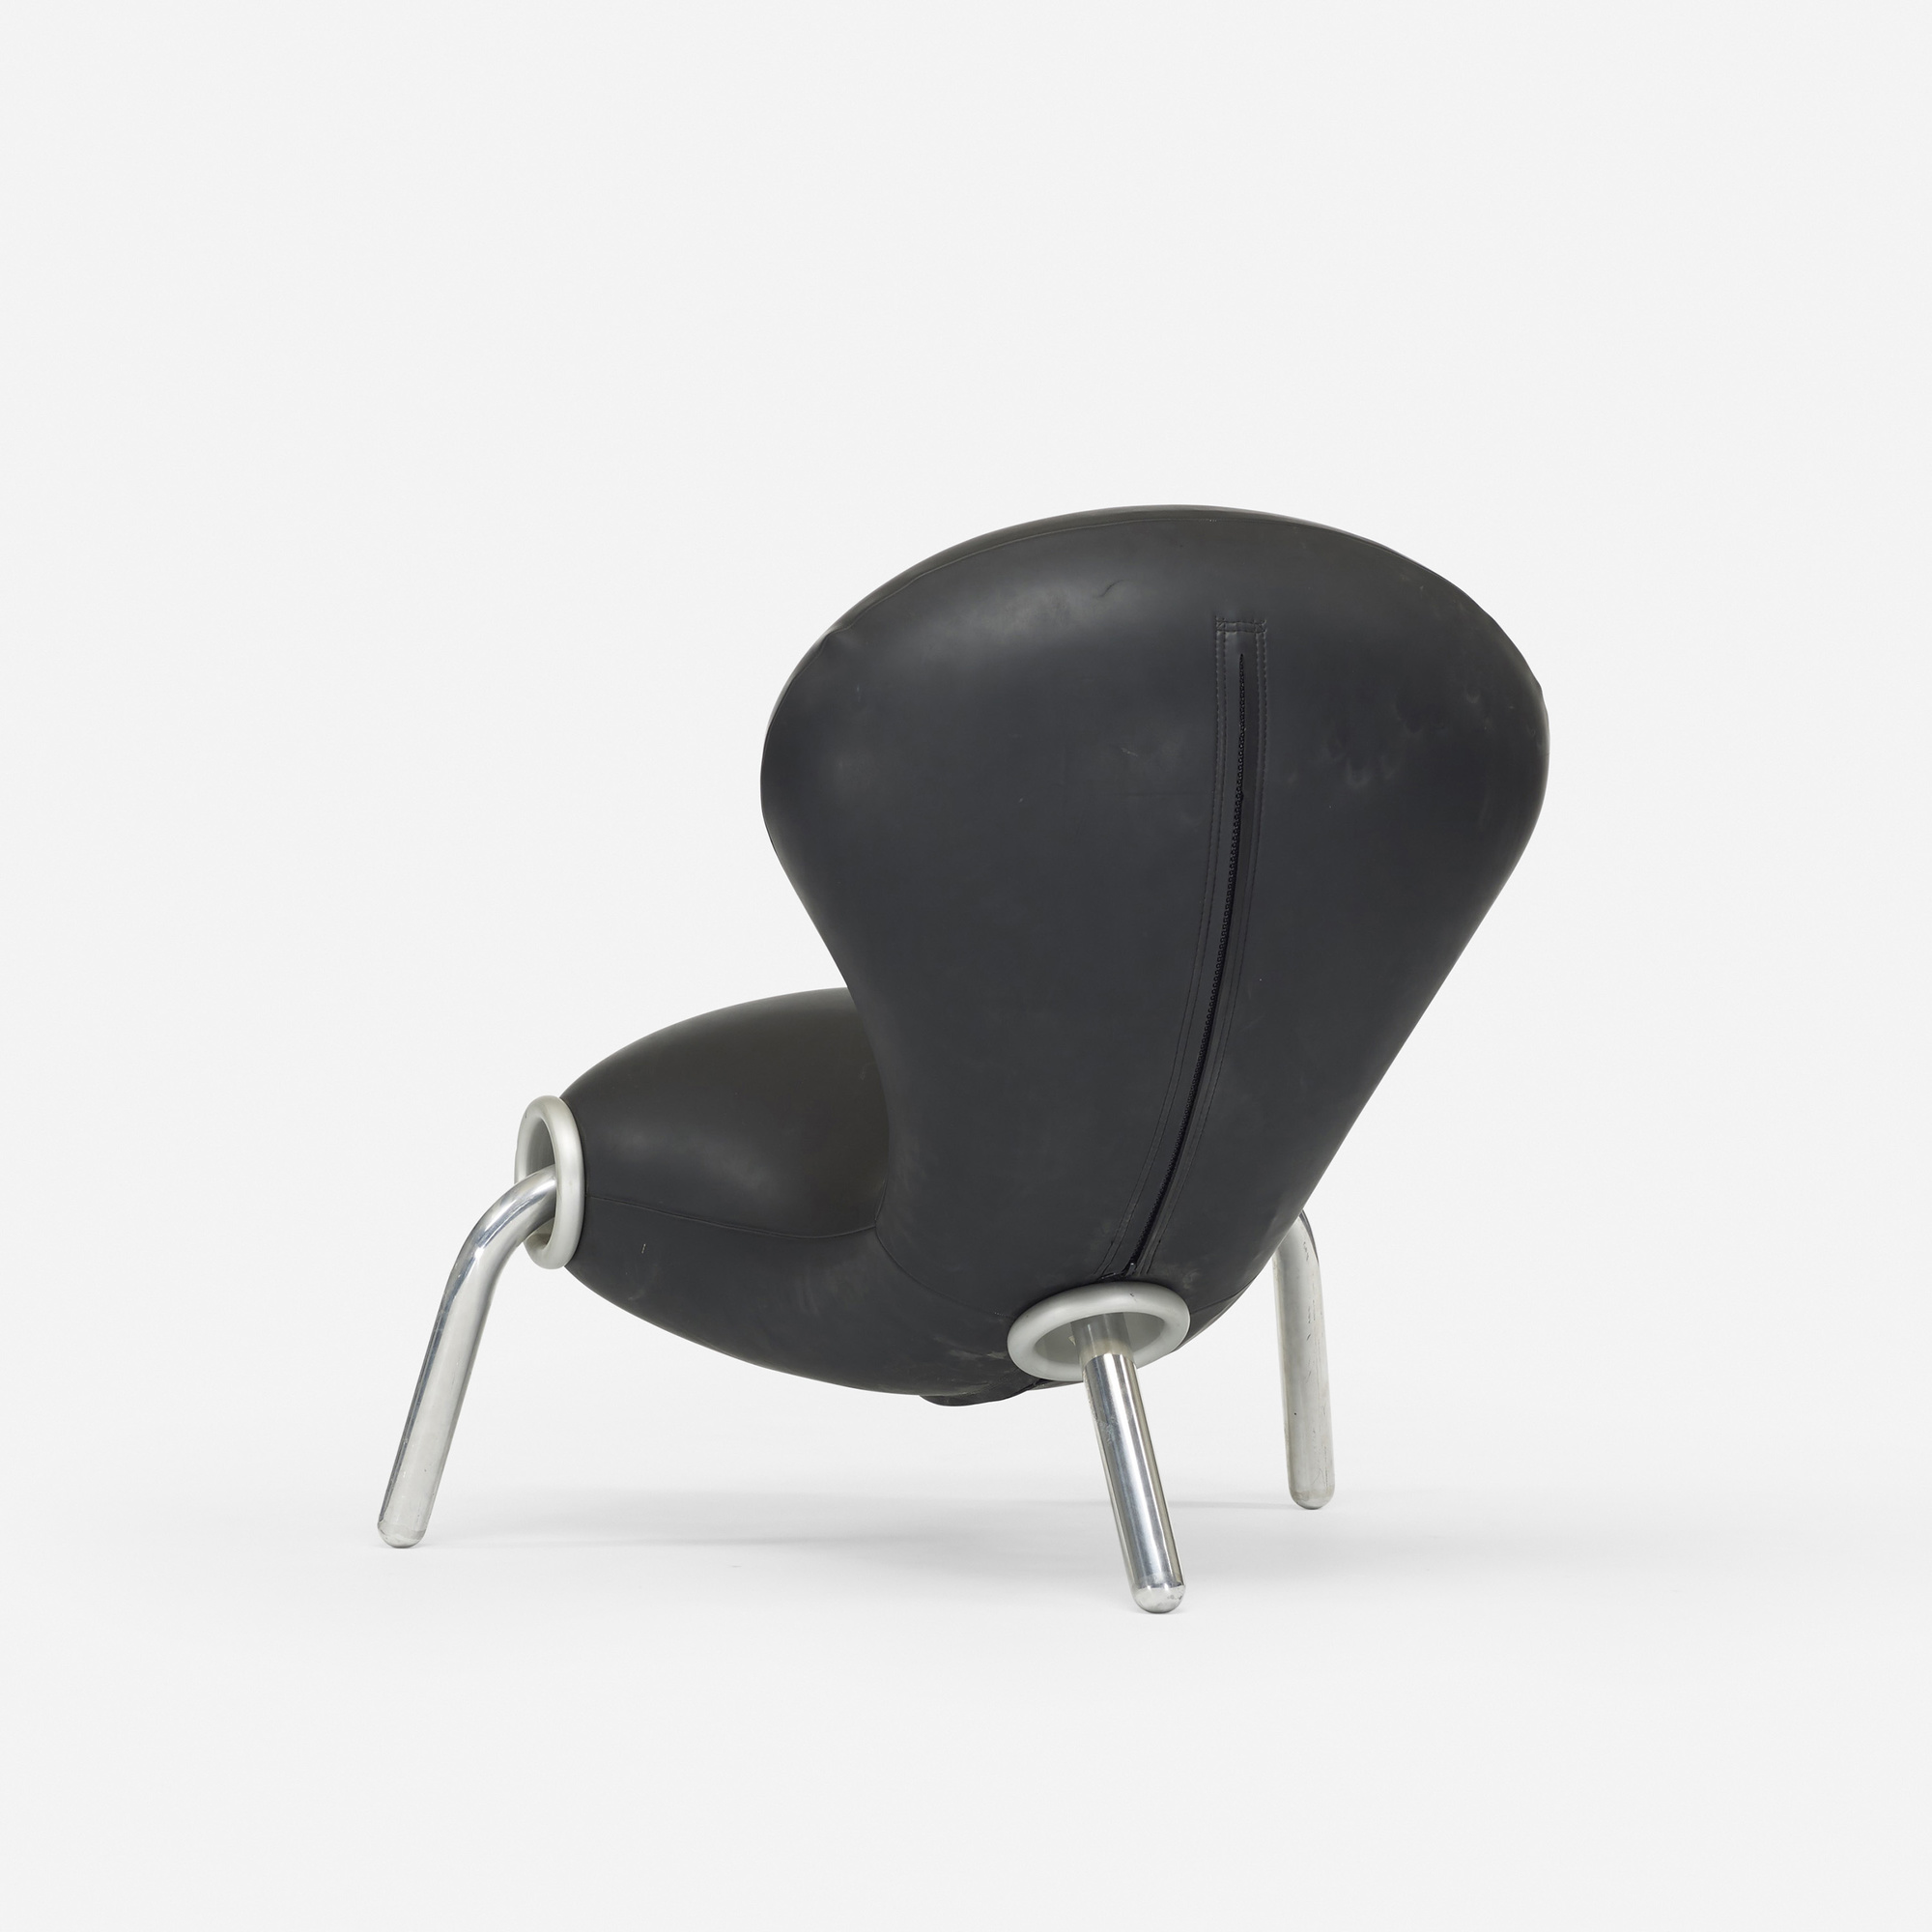 214 marc newson embryo chair for Embryo chair